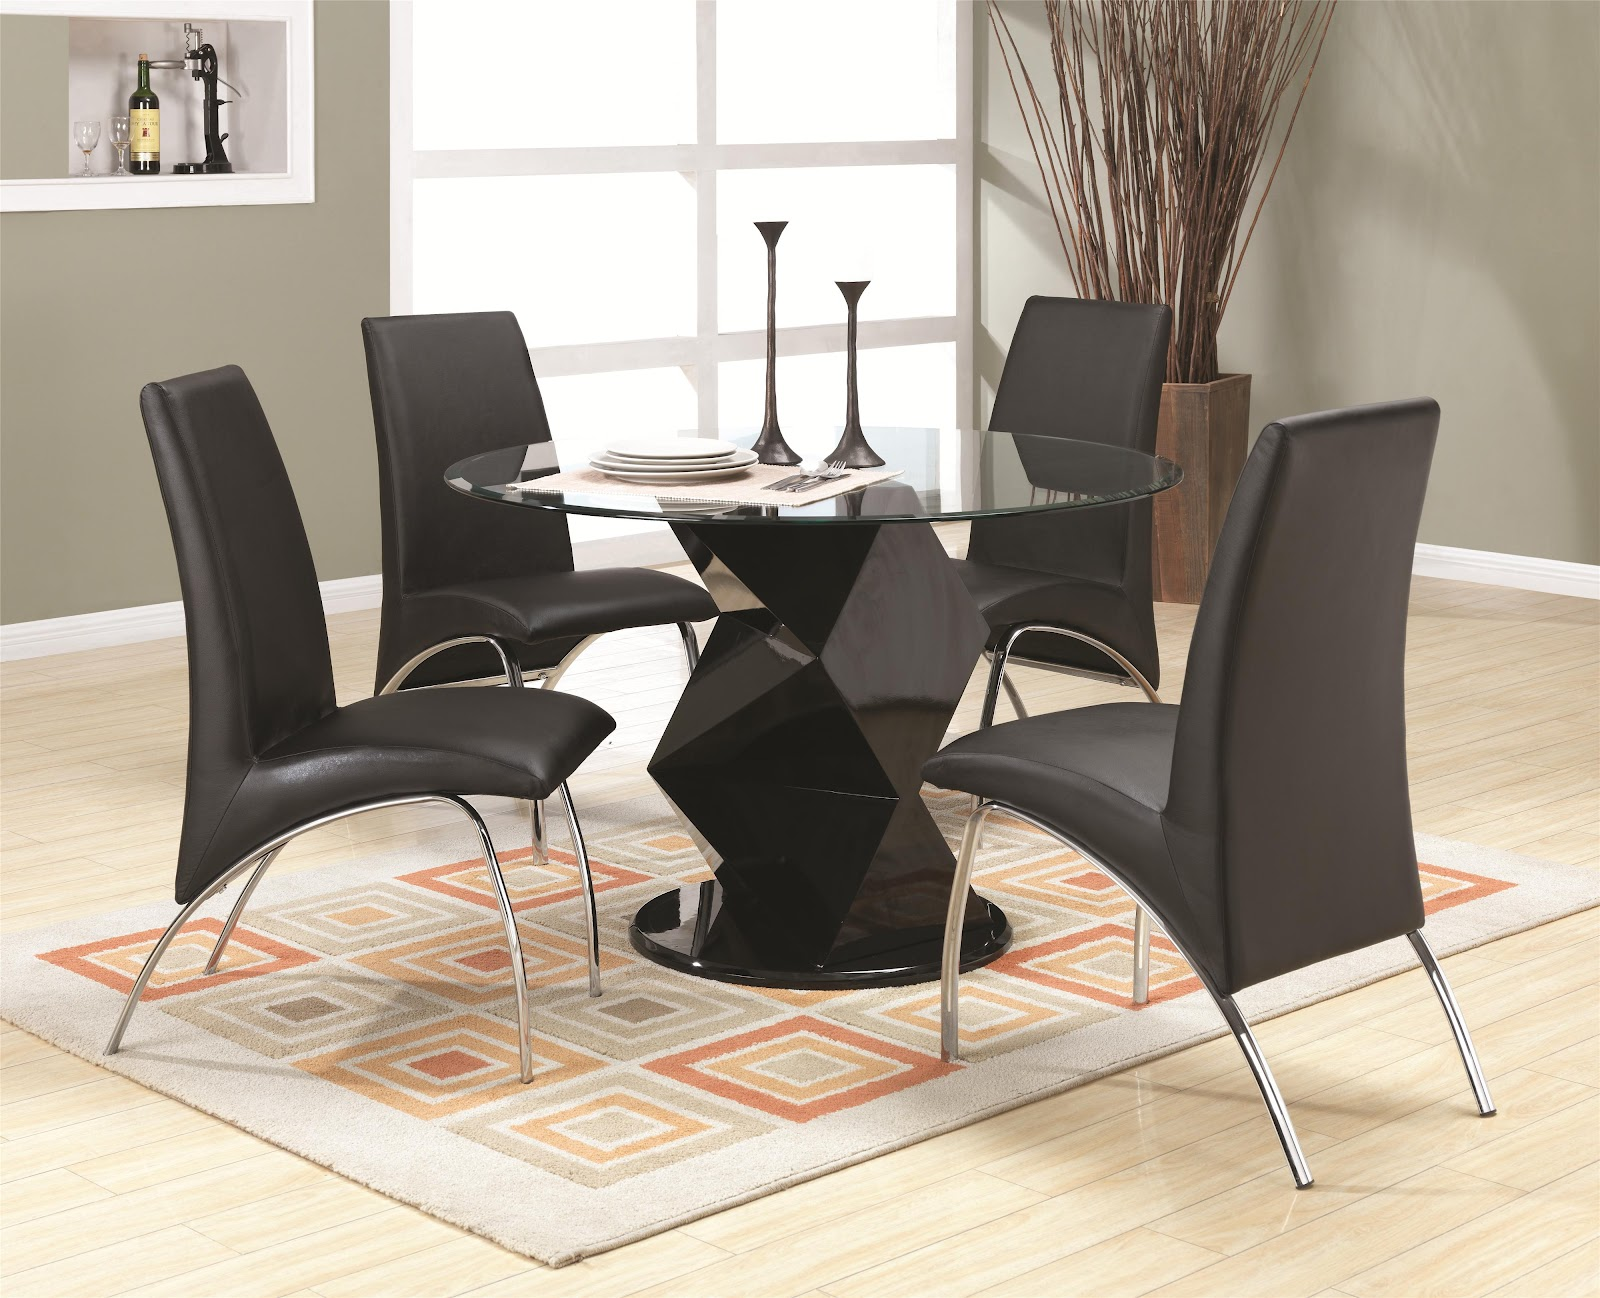 Modern dining room set dining room unique dinette for Modern dining rooms sets